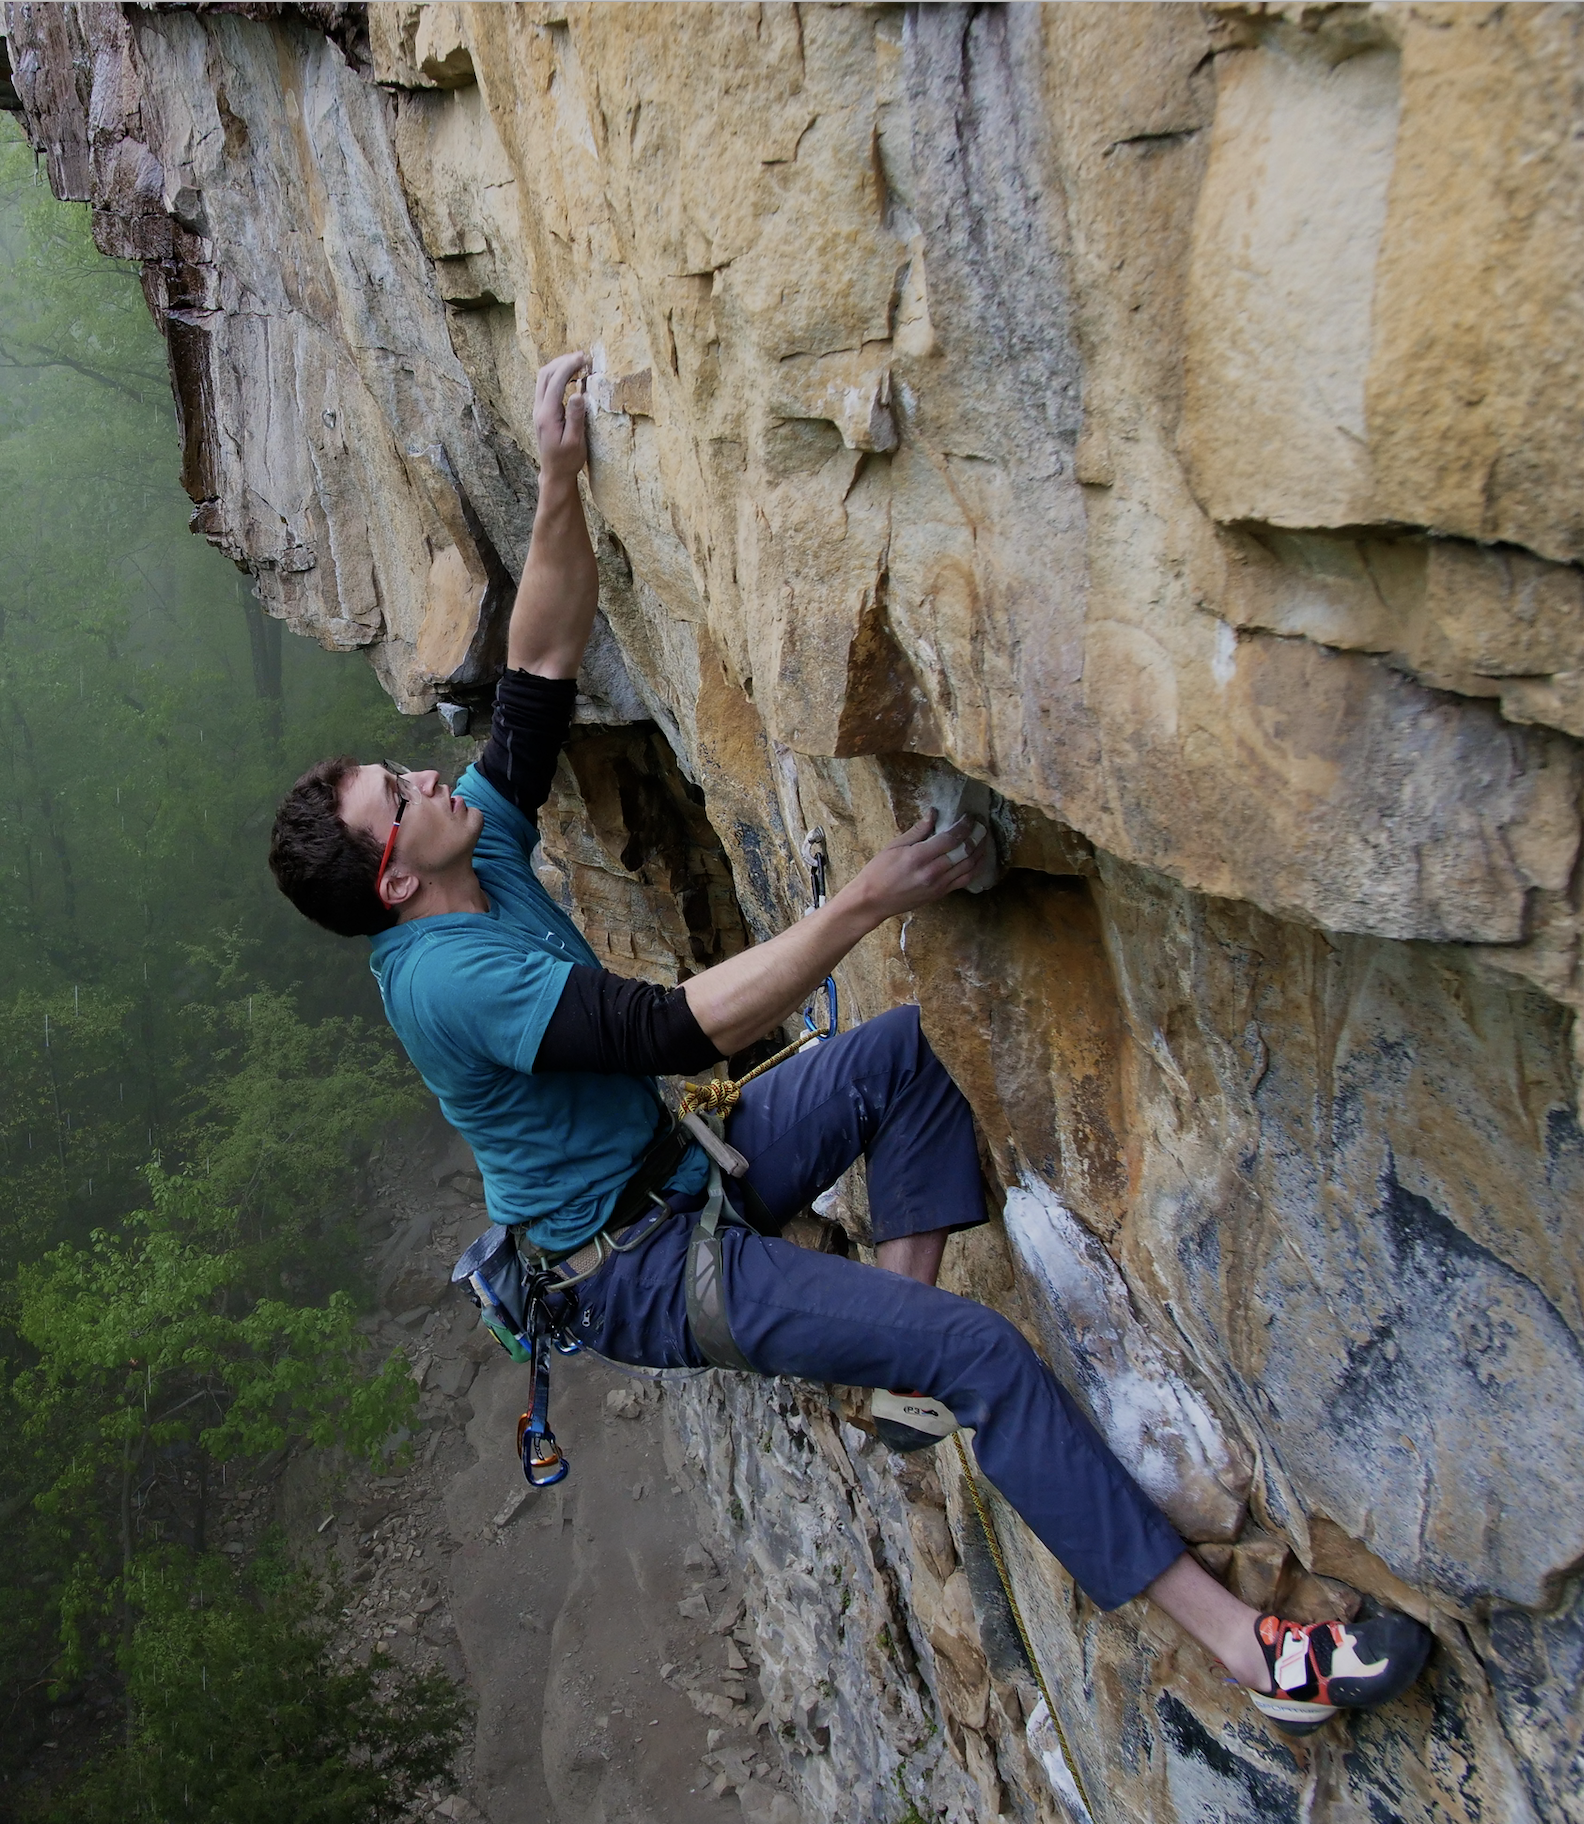 Justin Jakimiak climbing Mutatious (5.12c) on a rainy day. Photo by  Rich Moore .